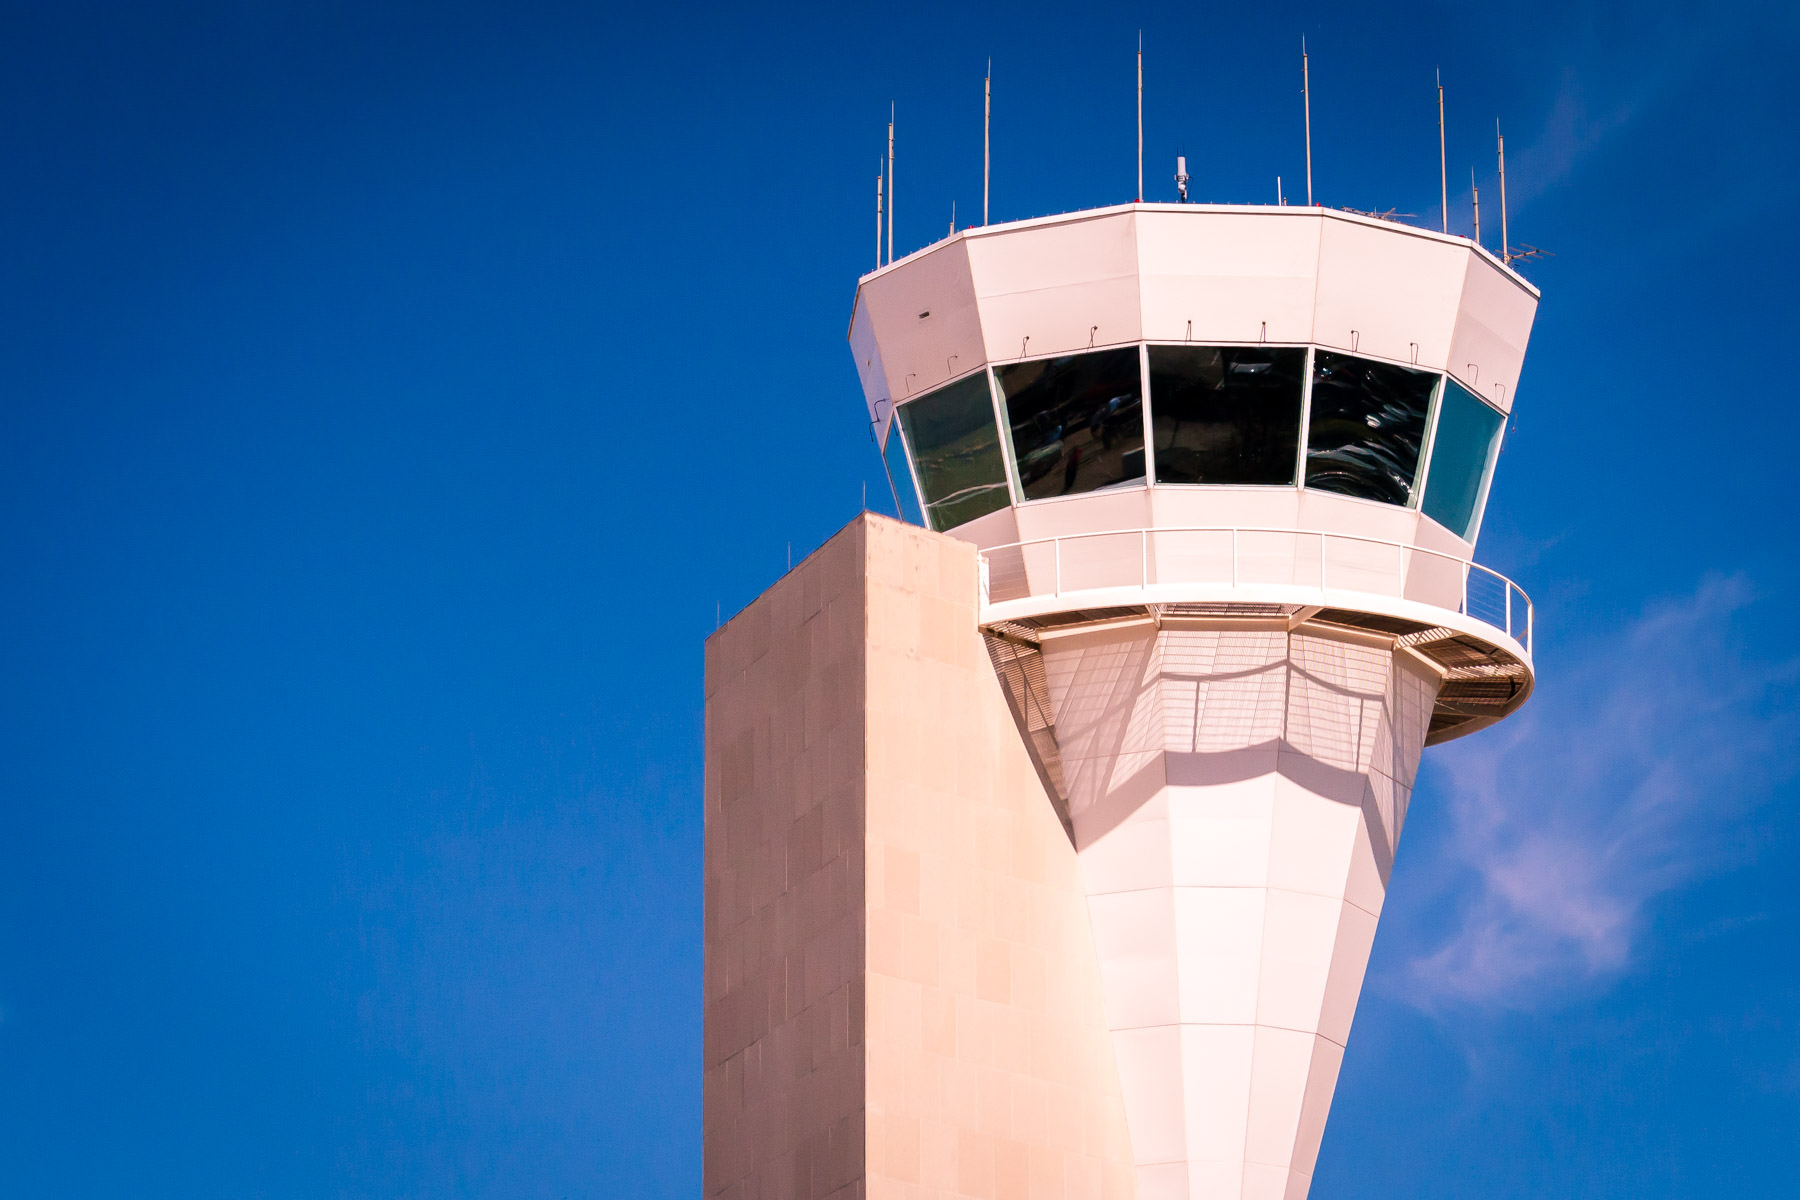 The control tower at Fort Worth-Alliance Airport, Texas, resembles a giant ice cream cone.